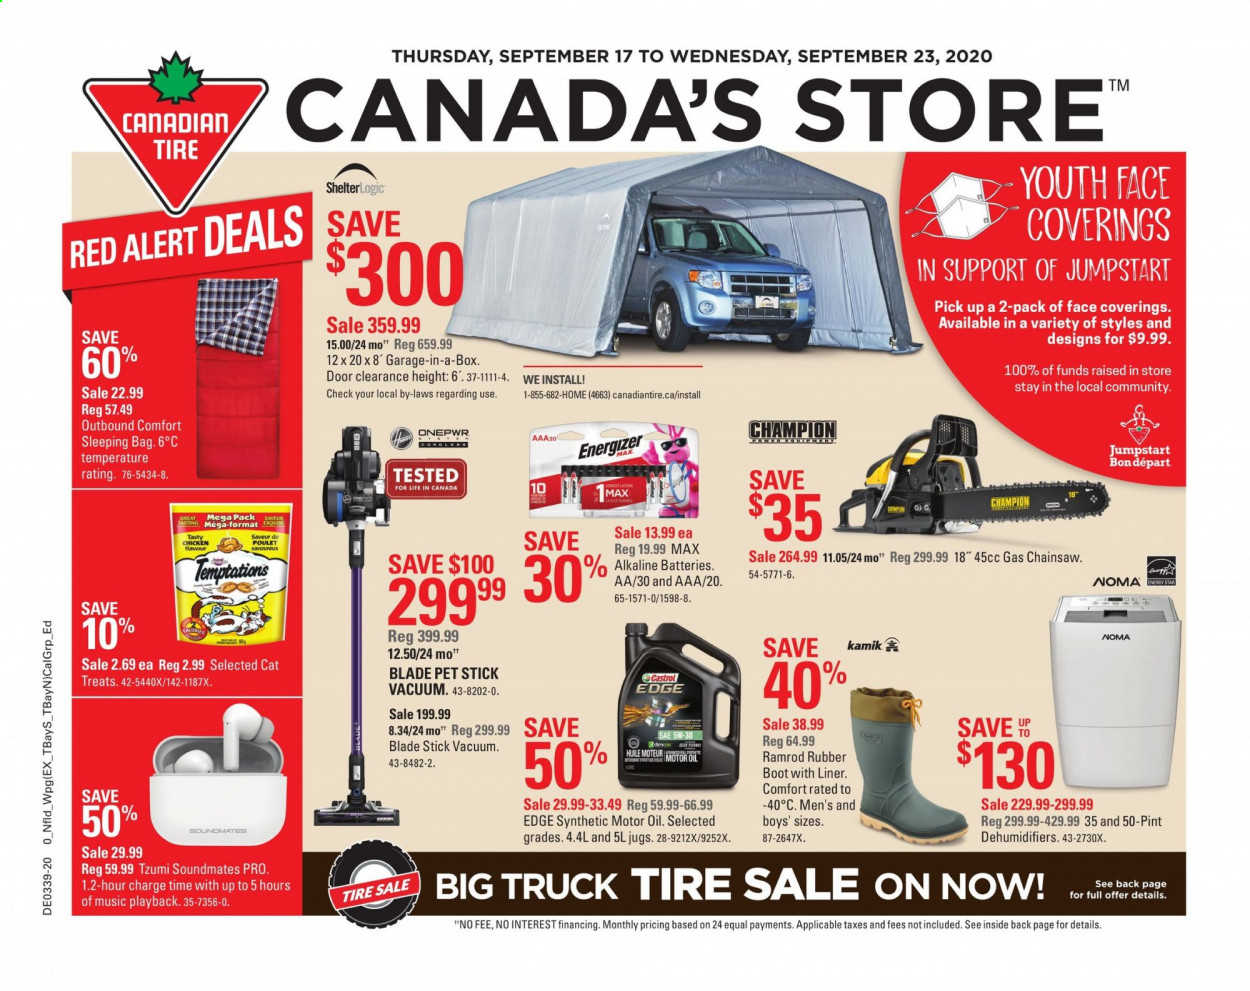 Canadian Tire Flyer - September 17, 2020 - September 23, 2020 - Sales products - bag, battery, door, energizer, motor oil, sleeping bag, truck, vacuum, champion, pet, chicken, poulet, huile, mot, aaa, alert, rubber, box, blade, treats, doors. Page 1.